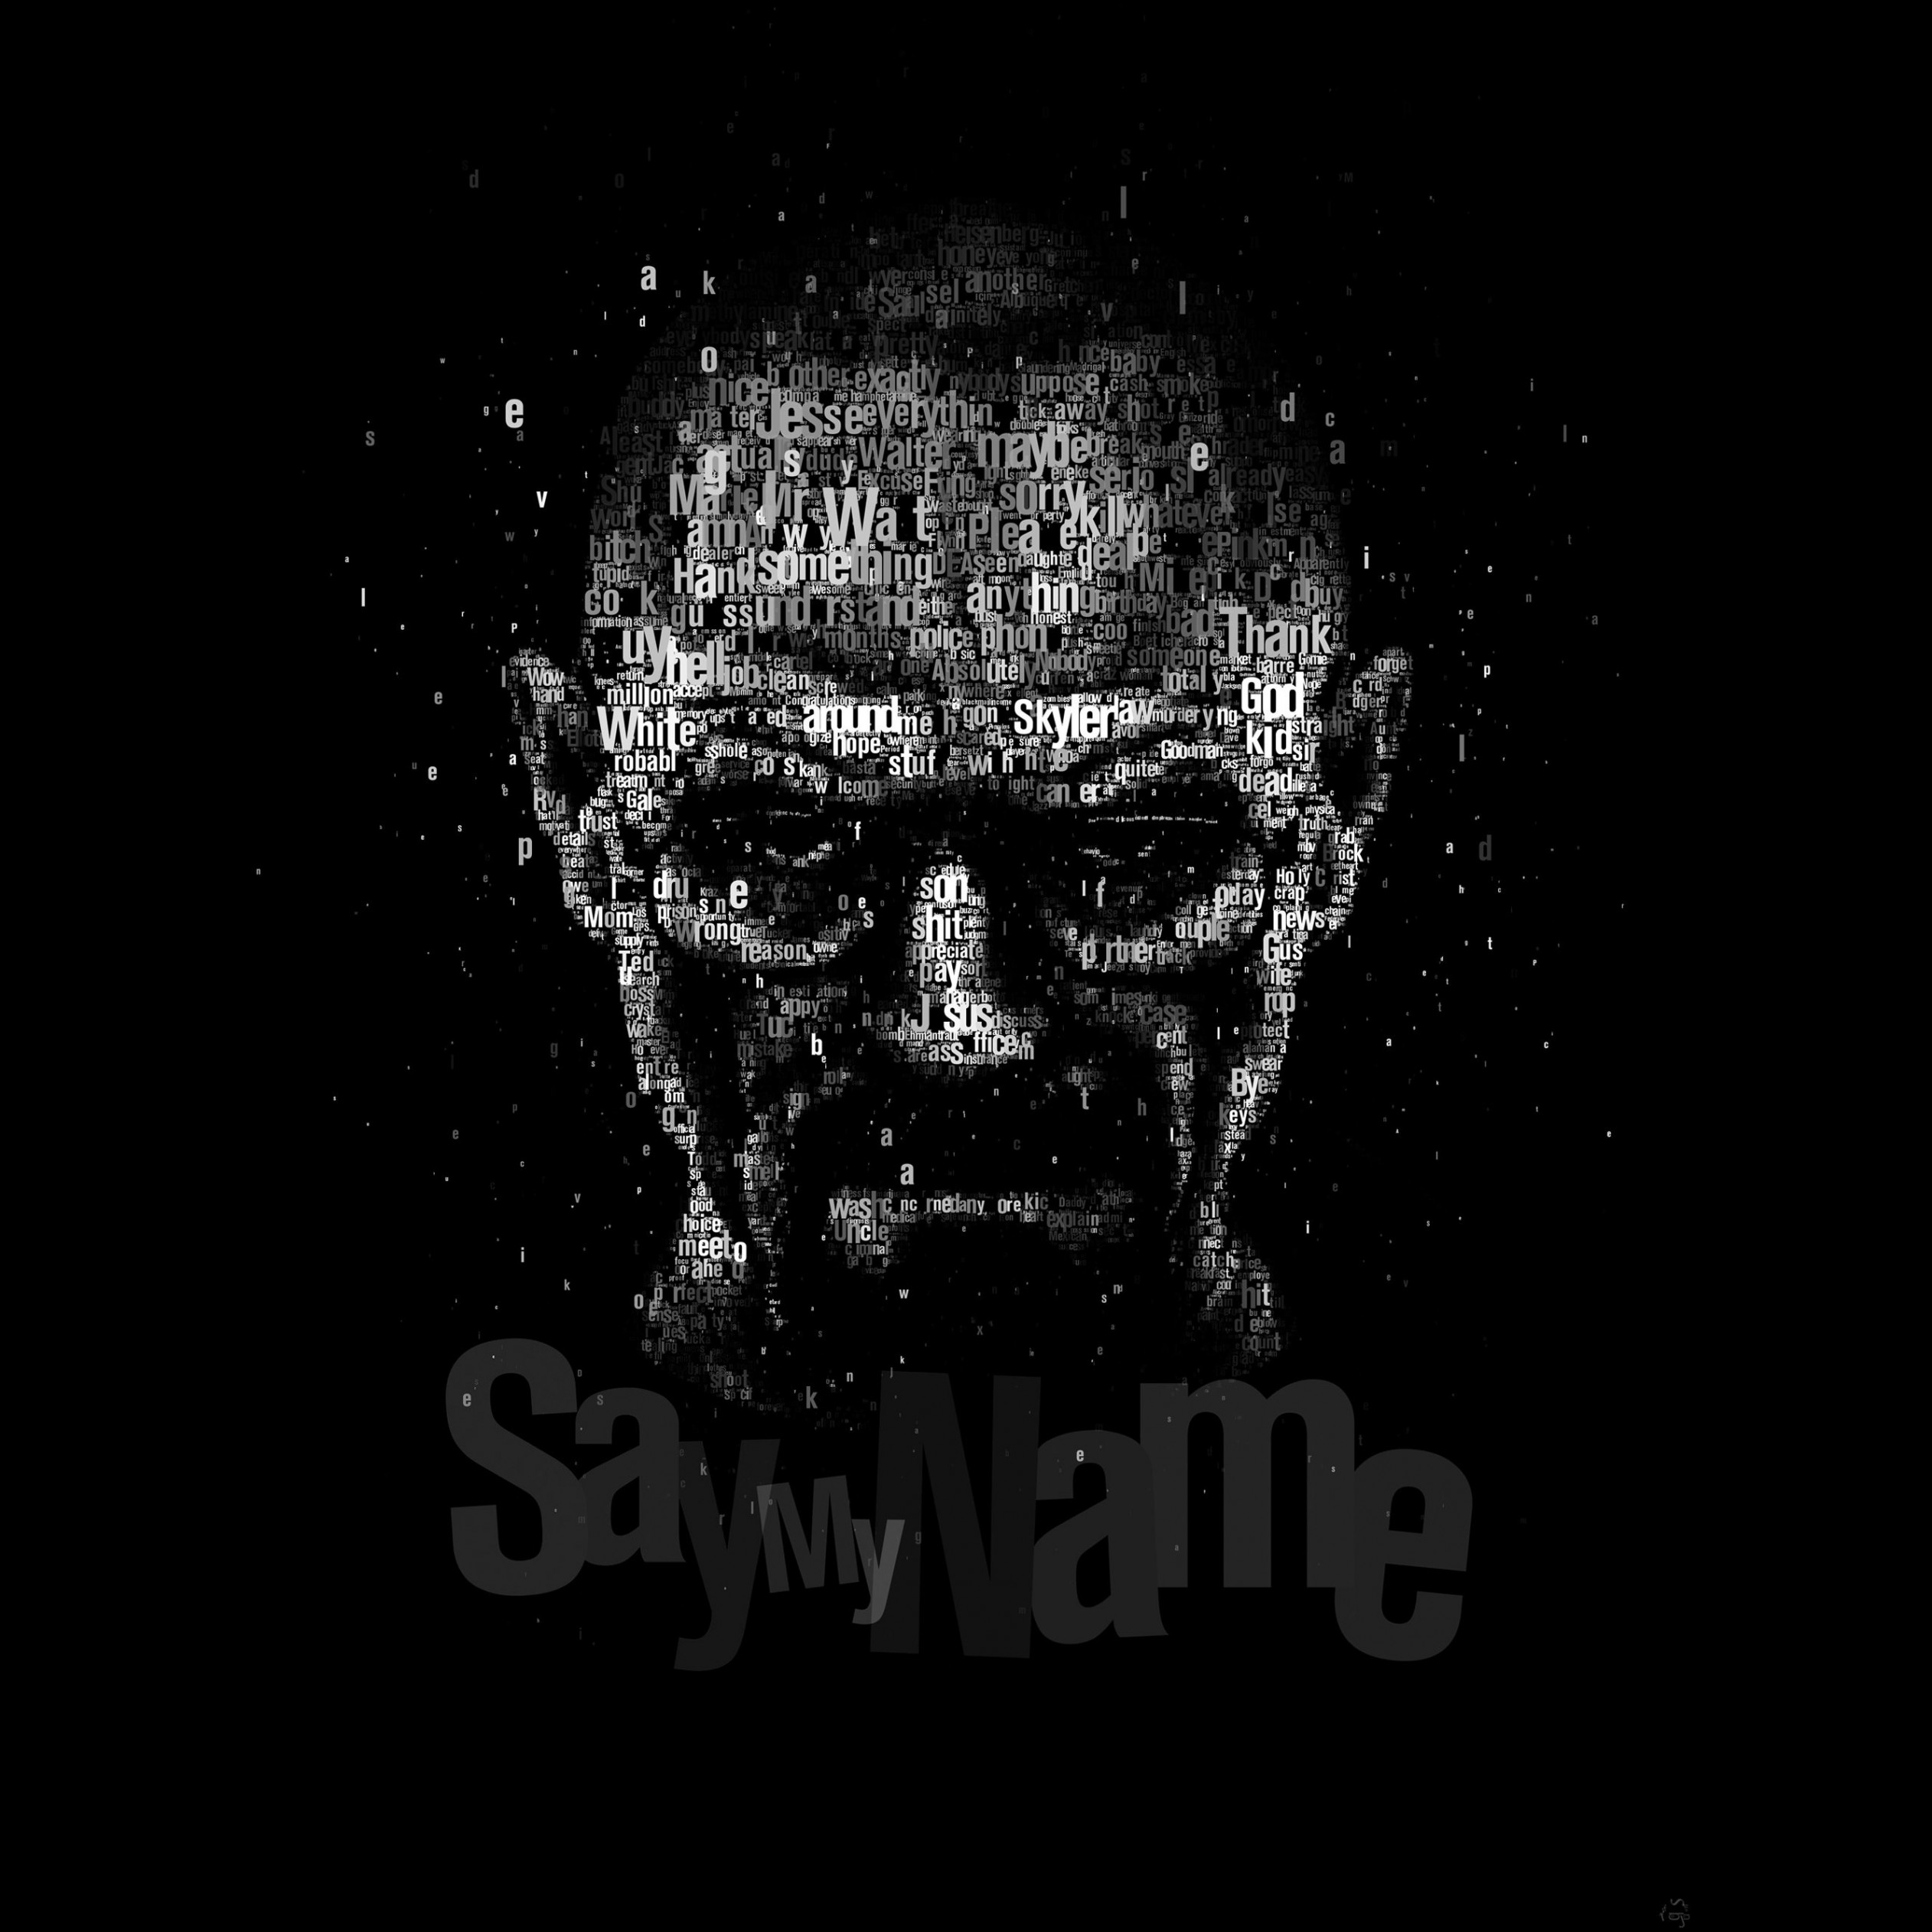 Say My Name - Typography Art Wallpaper for Apple iPad 4